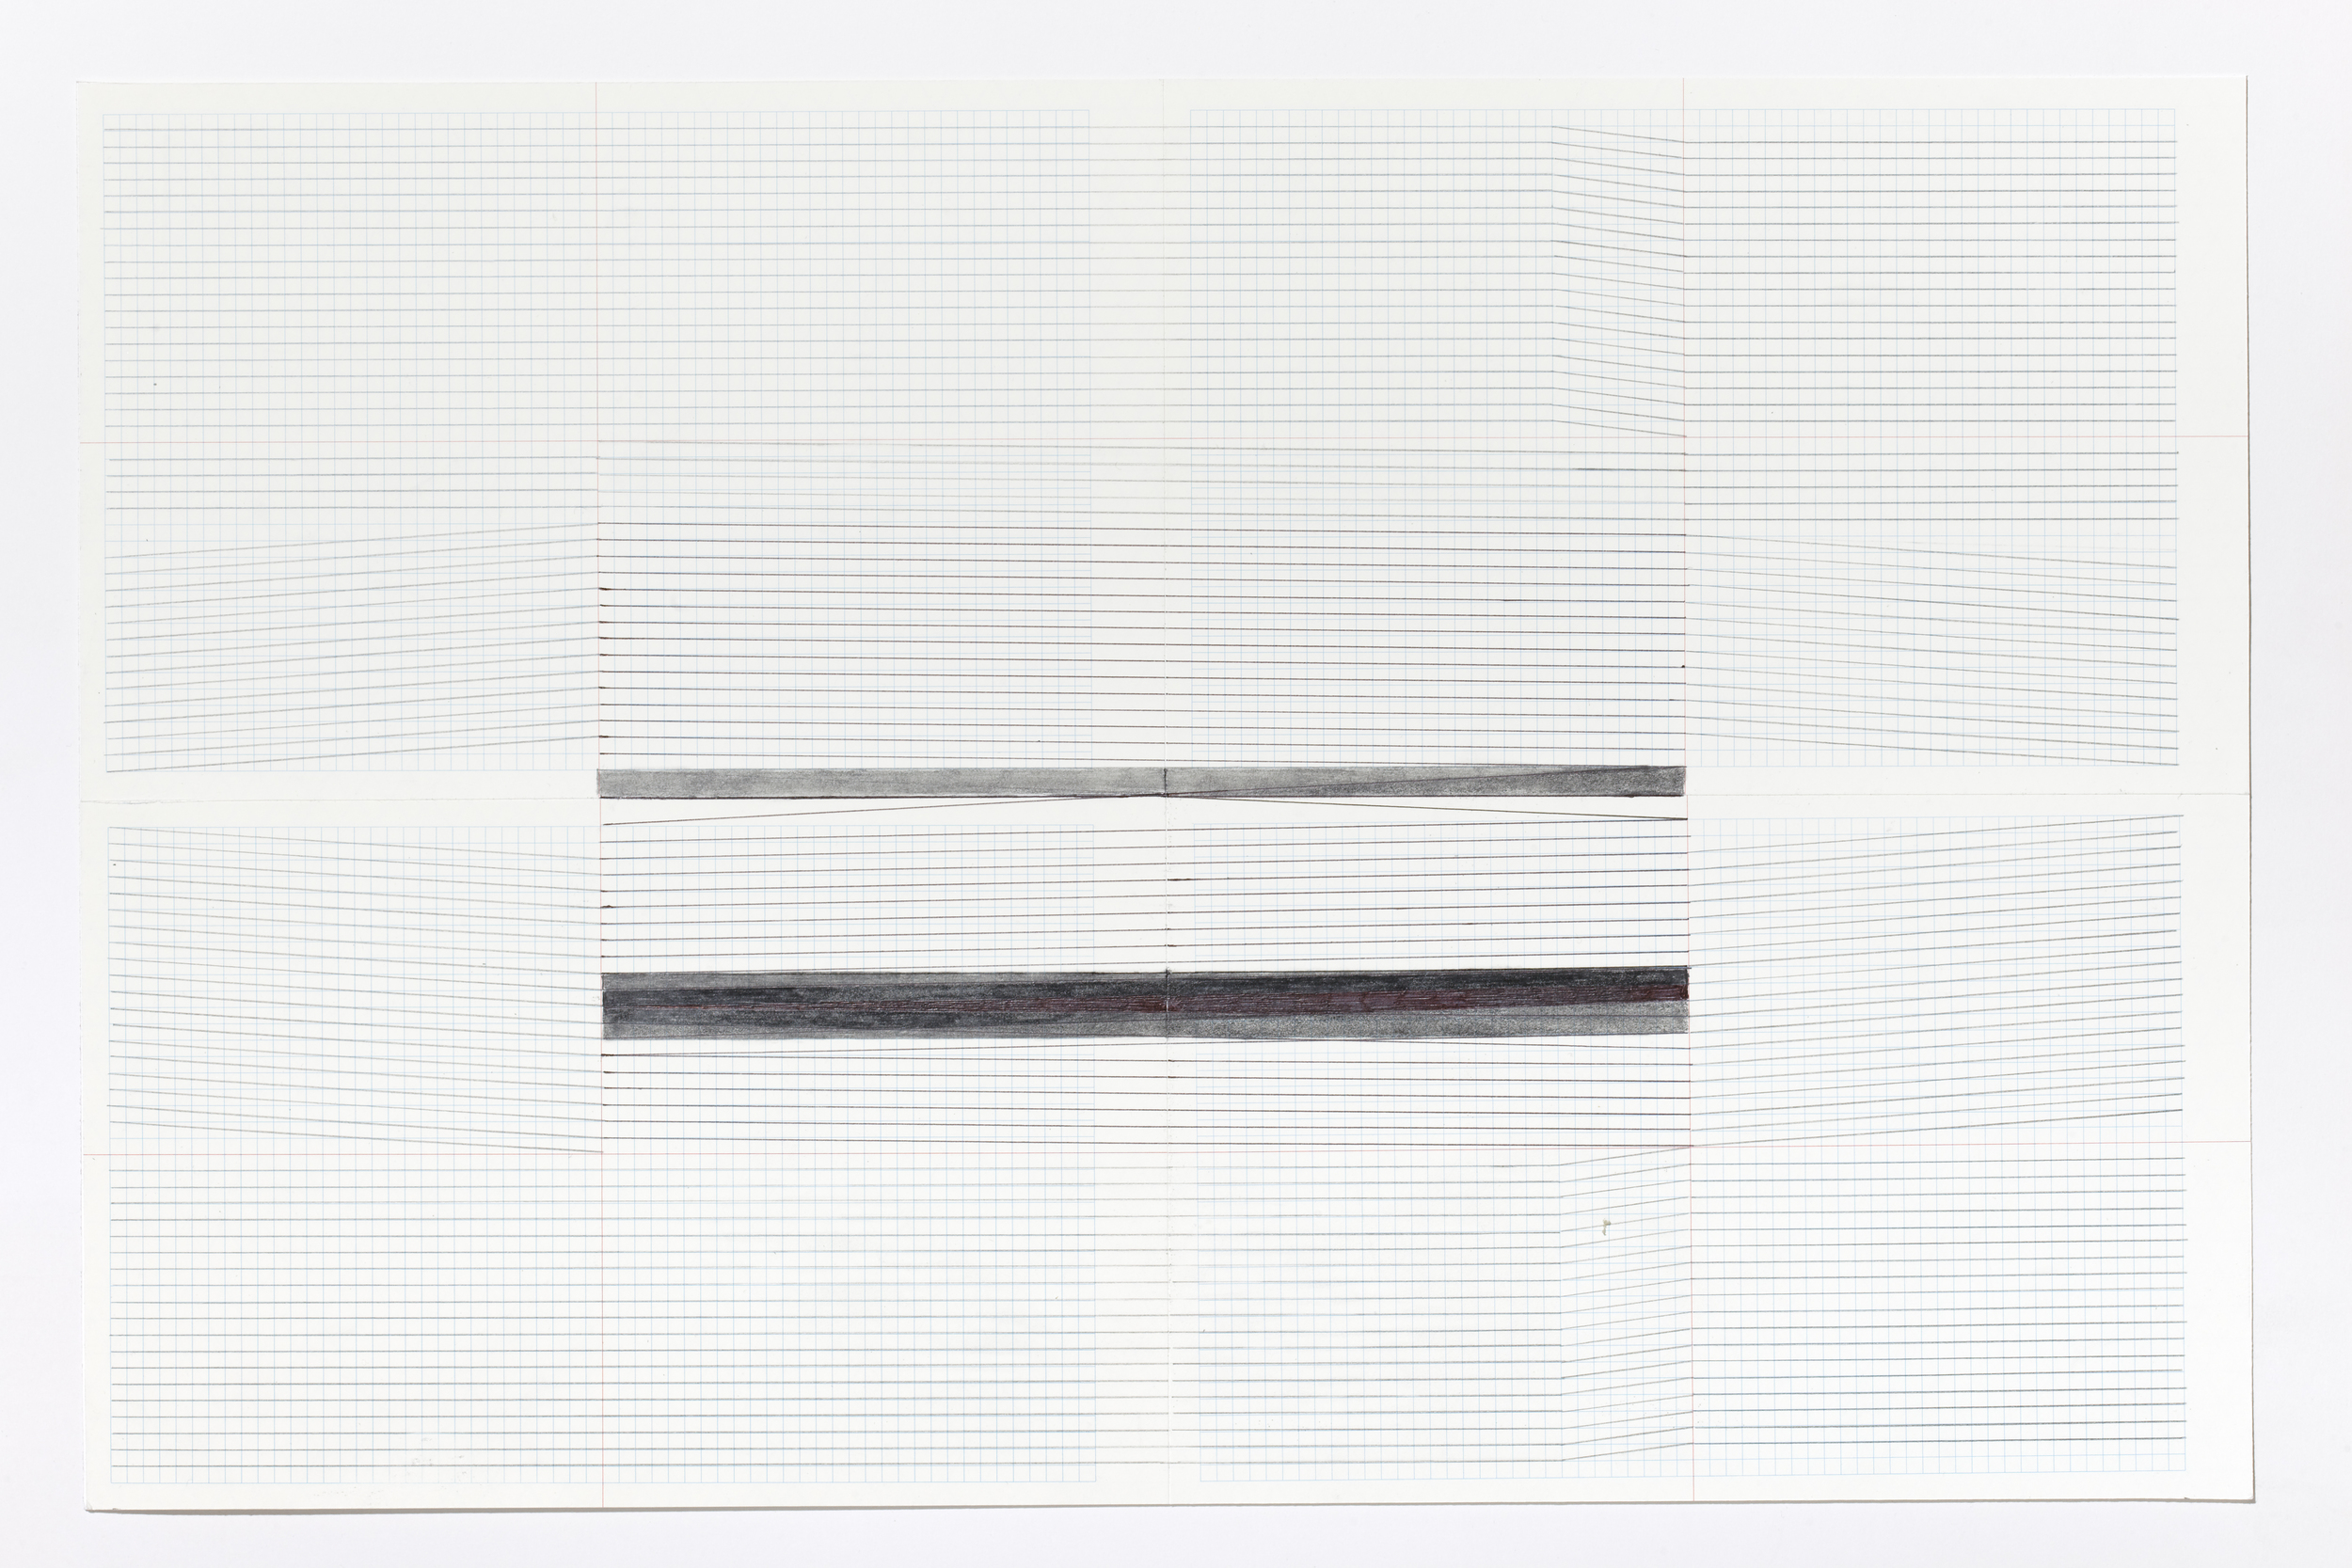 Haleh Redjaian,  Untitled (4/9) , 2015 pencil on paper, 32 x 46 cm